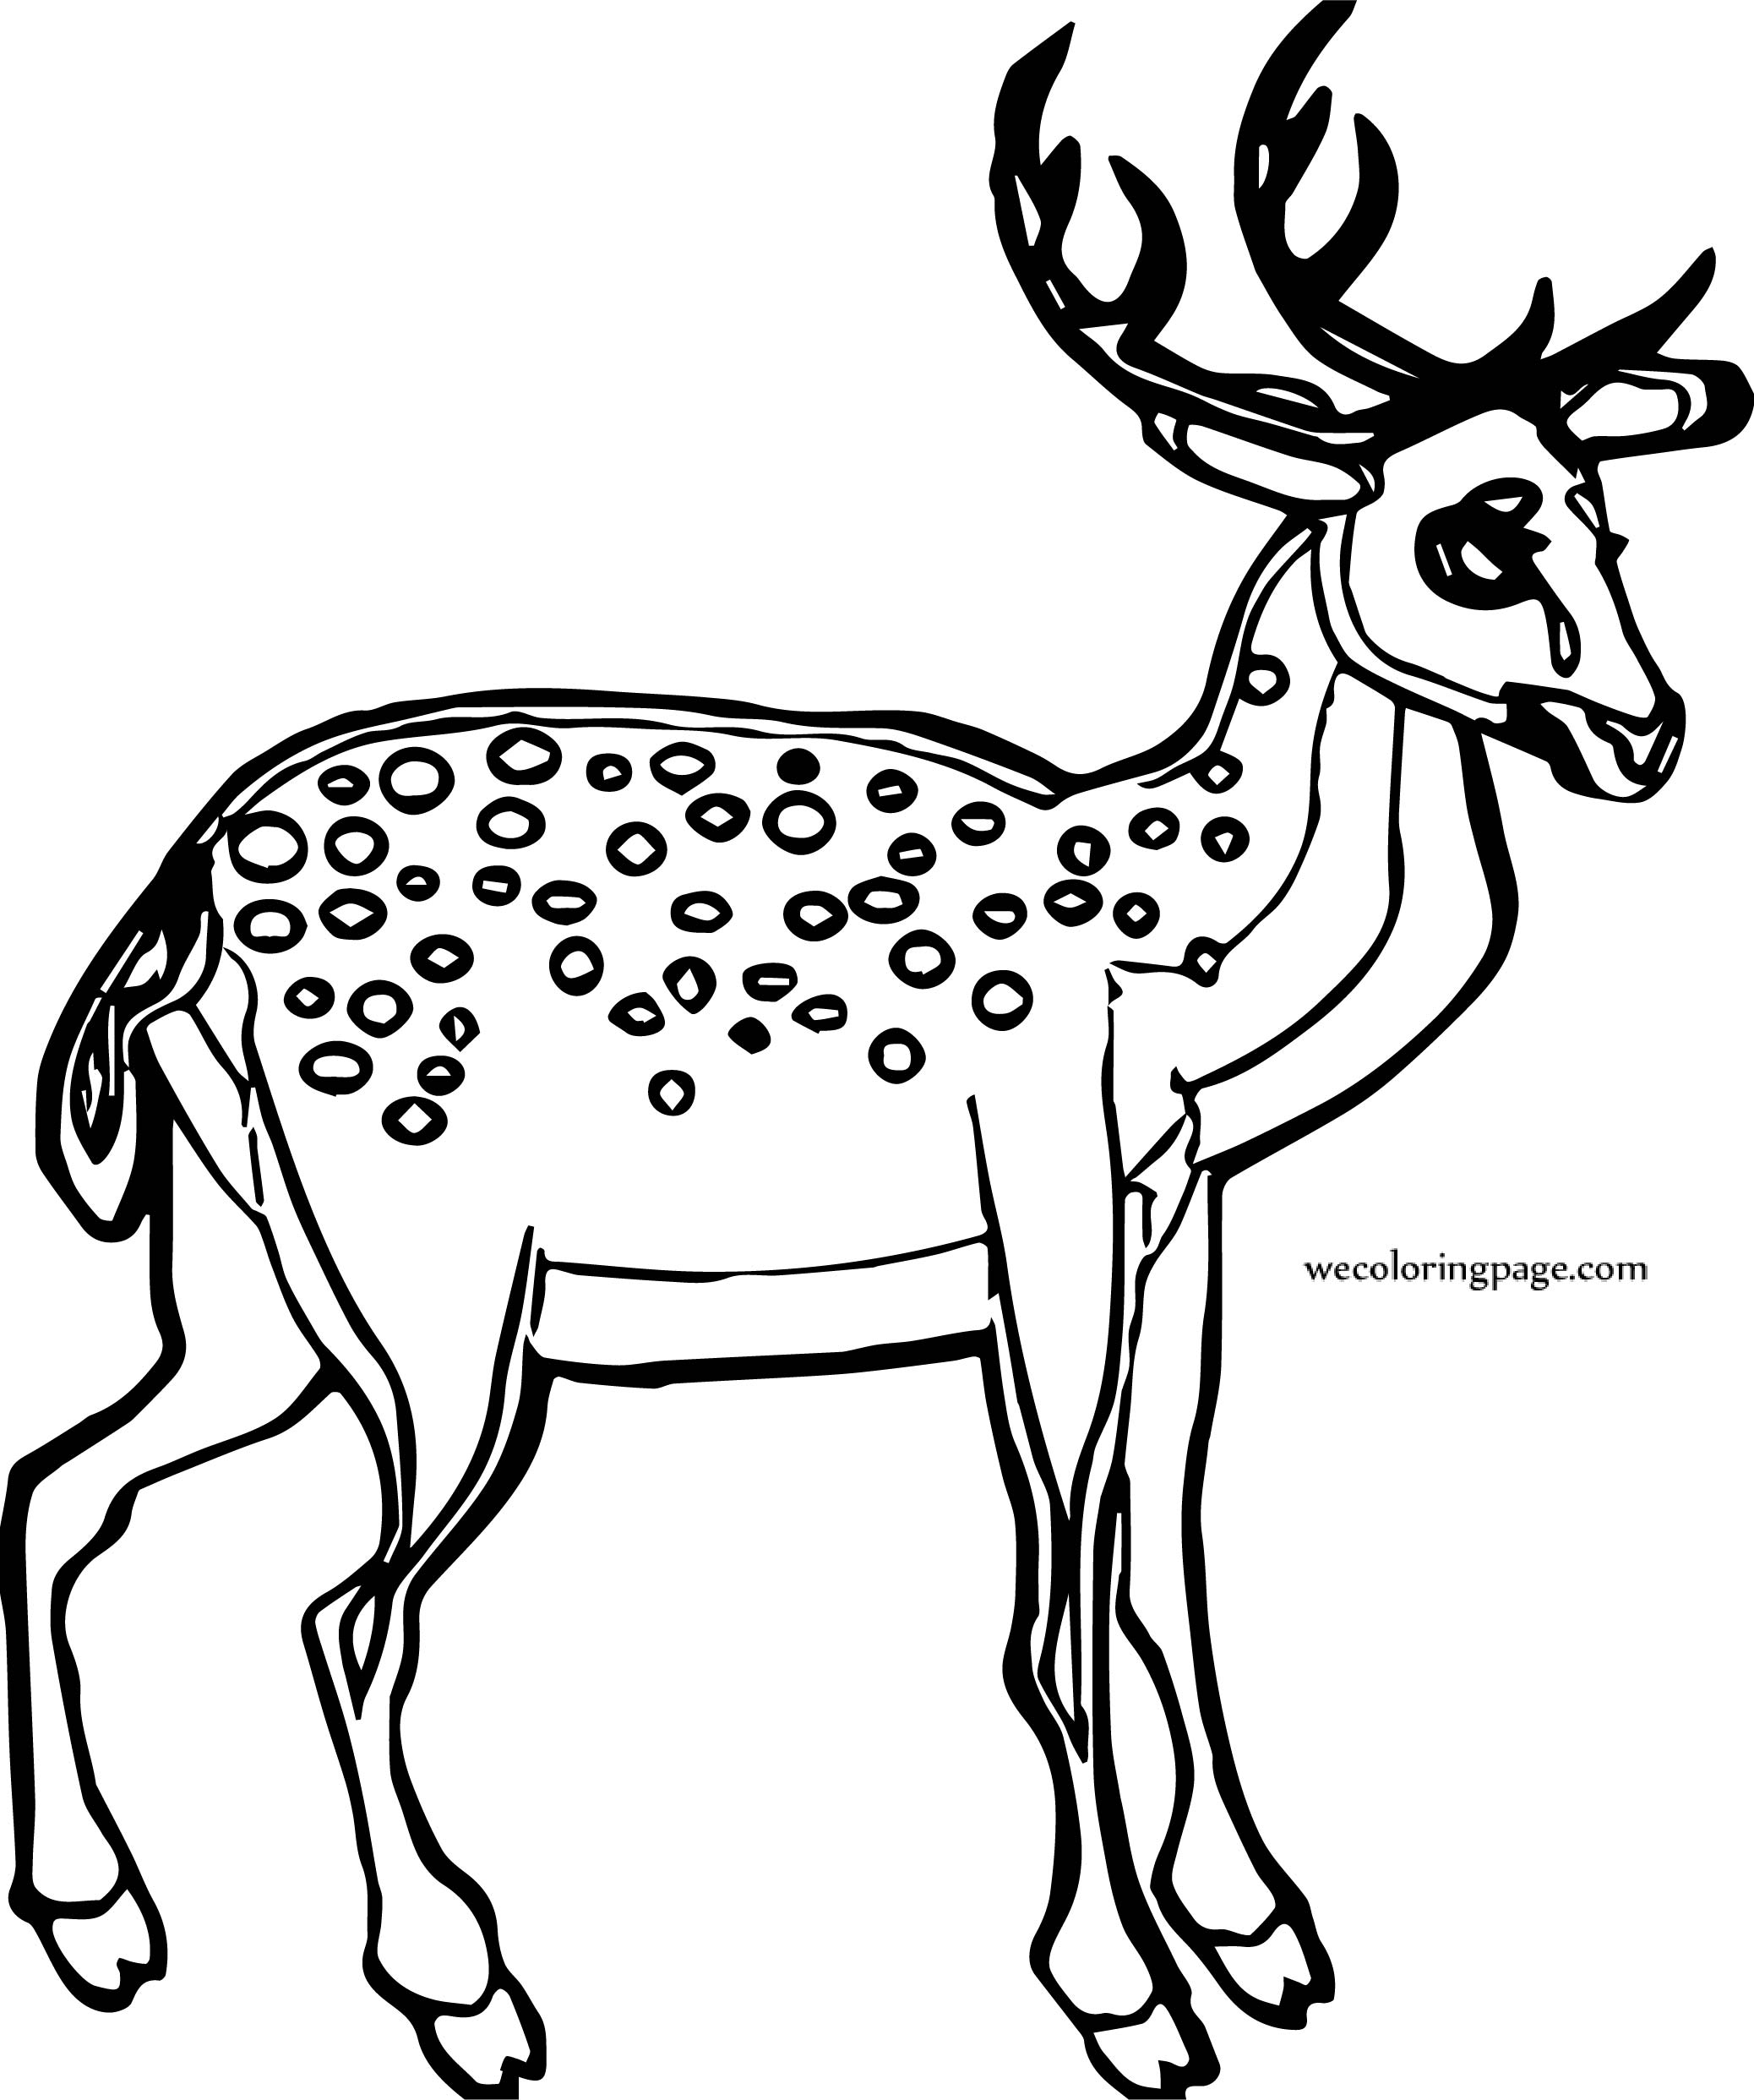 Deer Spotted Spotted Deer Coloring Page | Wecoloringpage